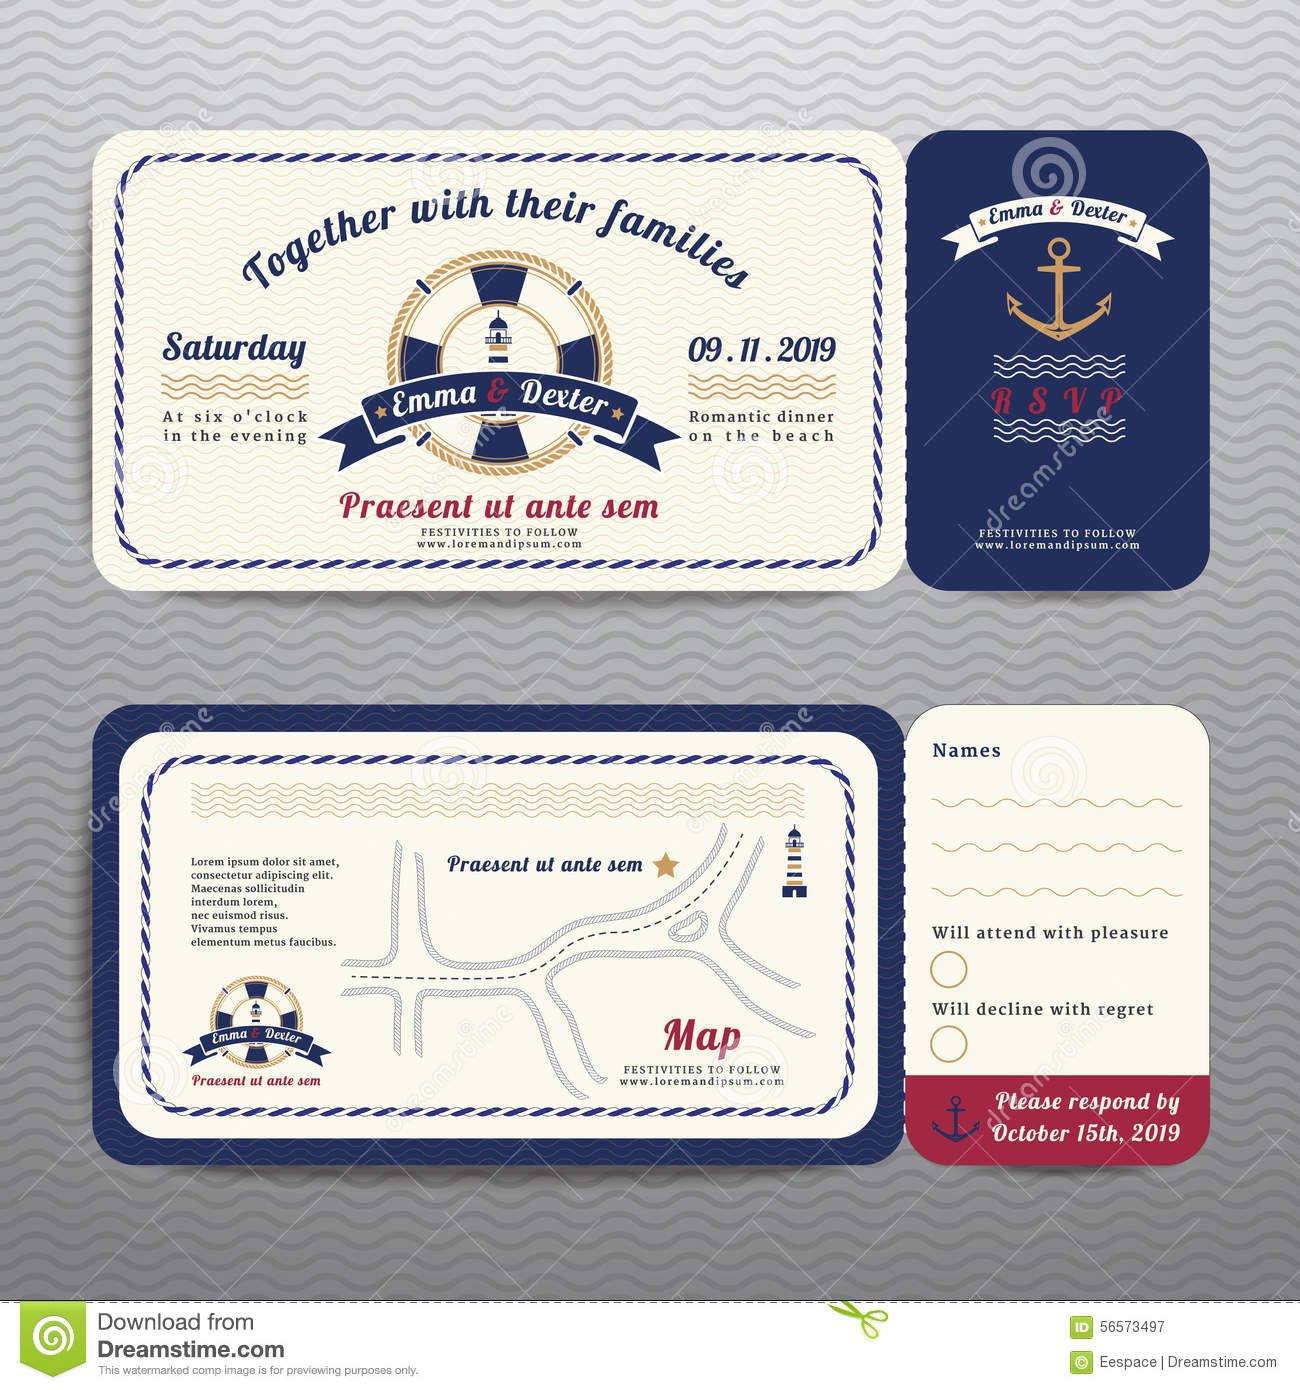 Stag party invite on the beach holiday vacation invitation ca nautical ticket wedding invitation and rsvp card with anchor rope design royalty free stock photography monicamarmolfo Choice Image